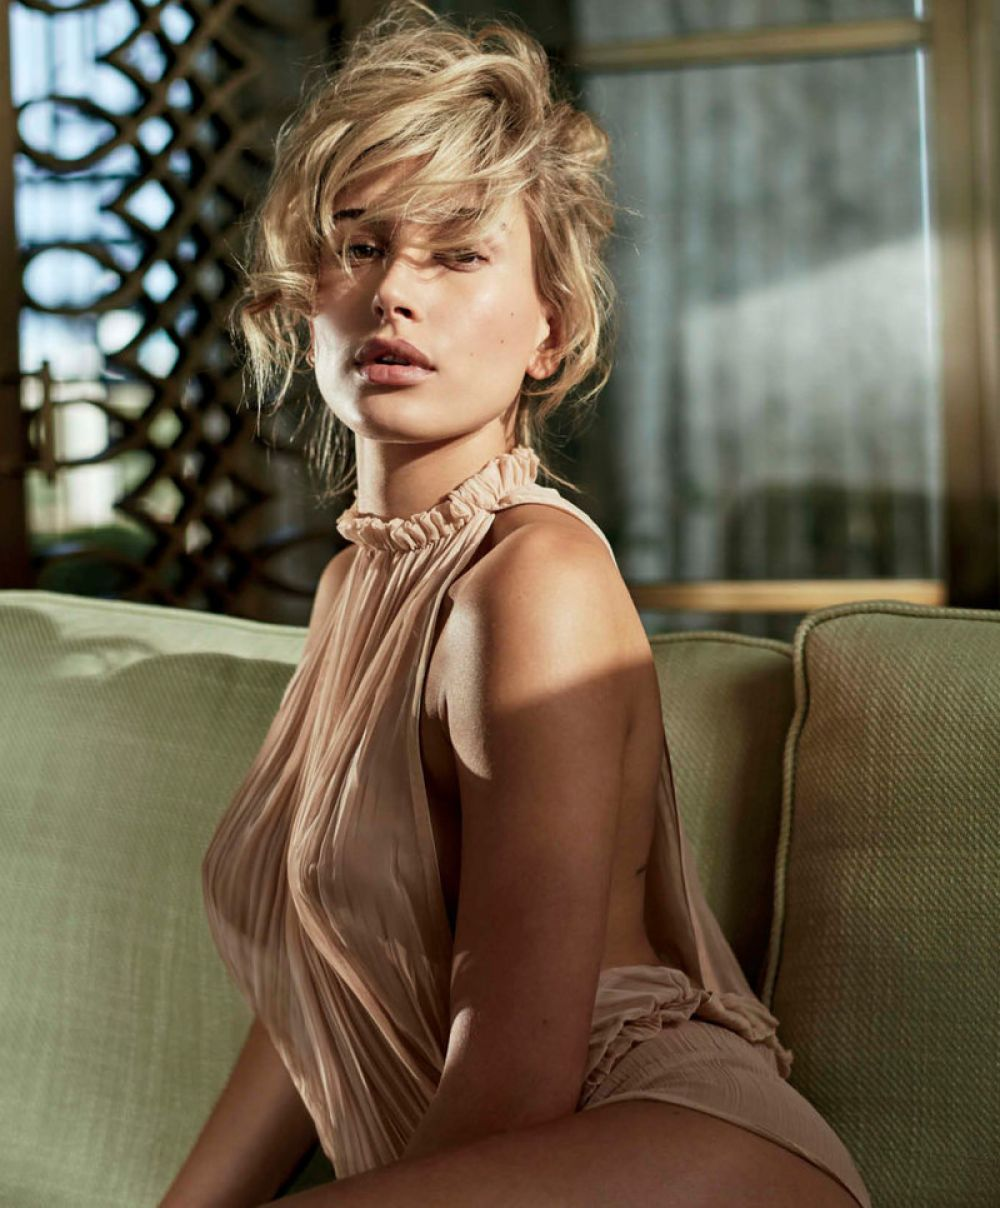 hailey baldwin - photo #30